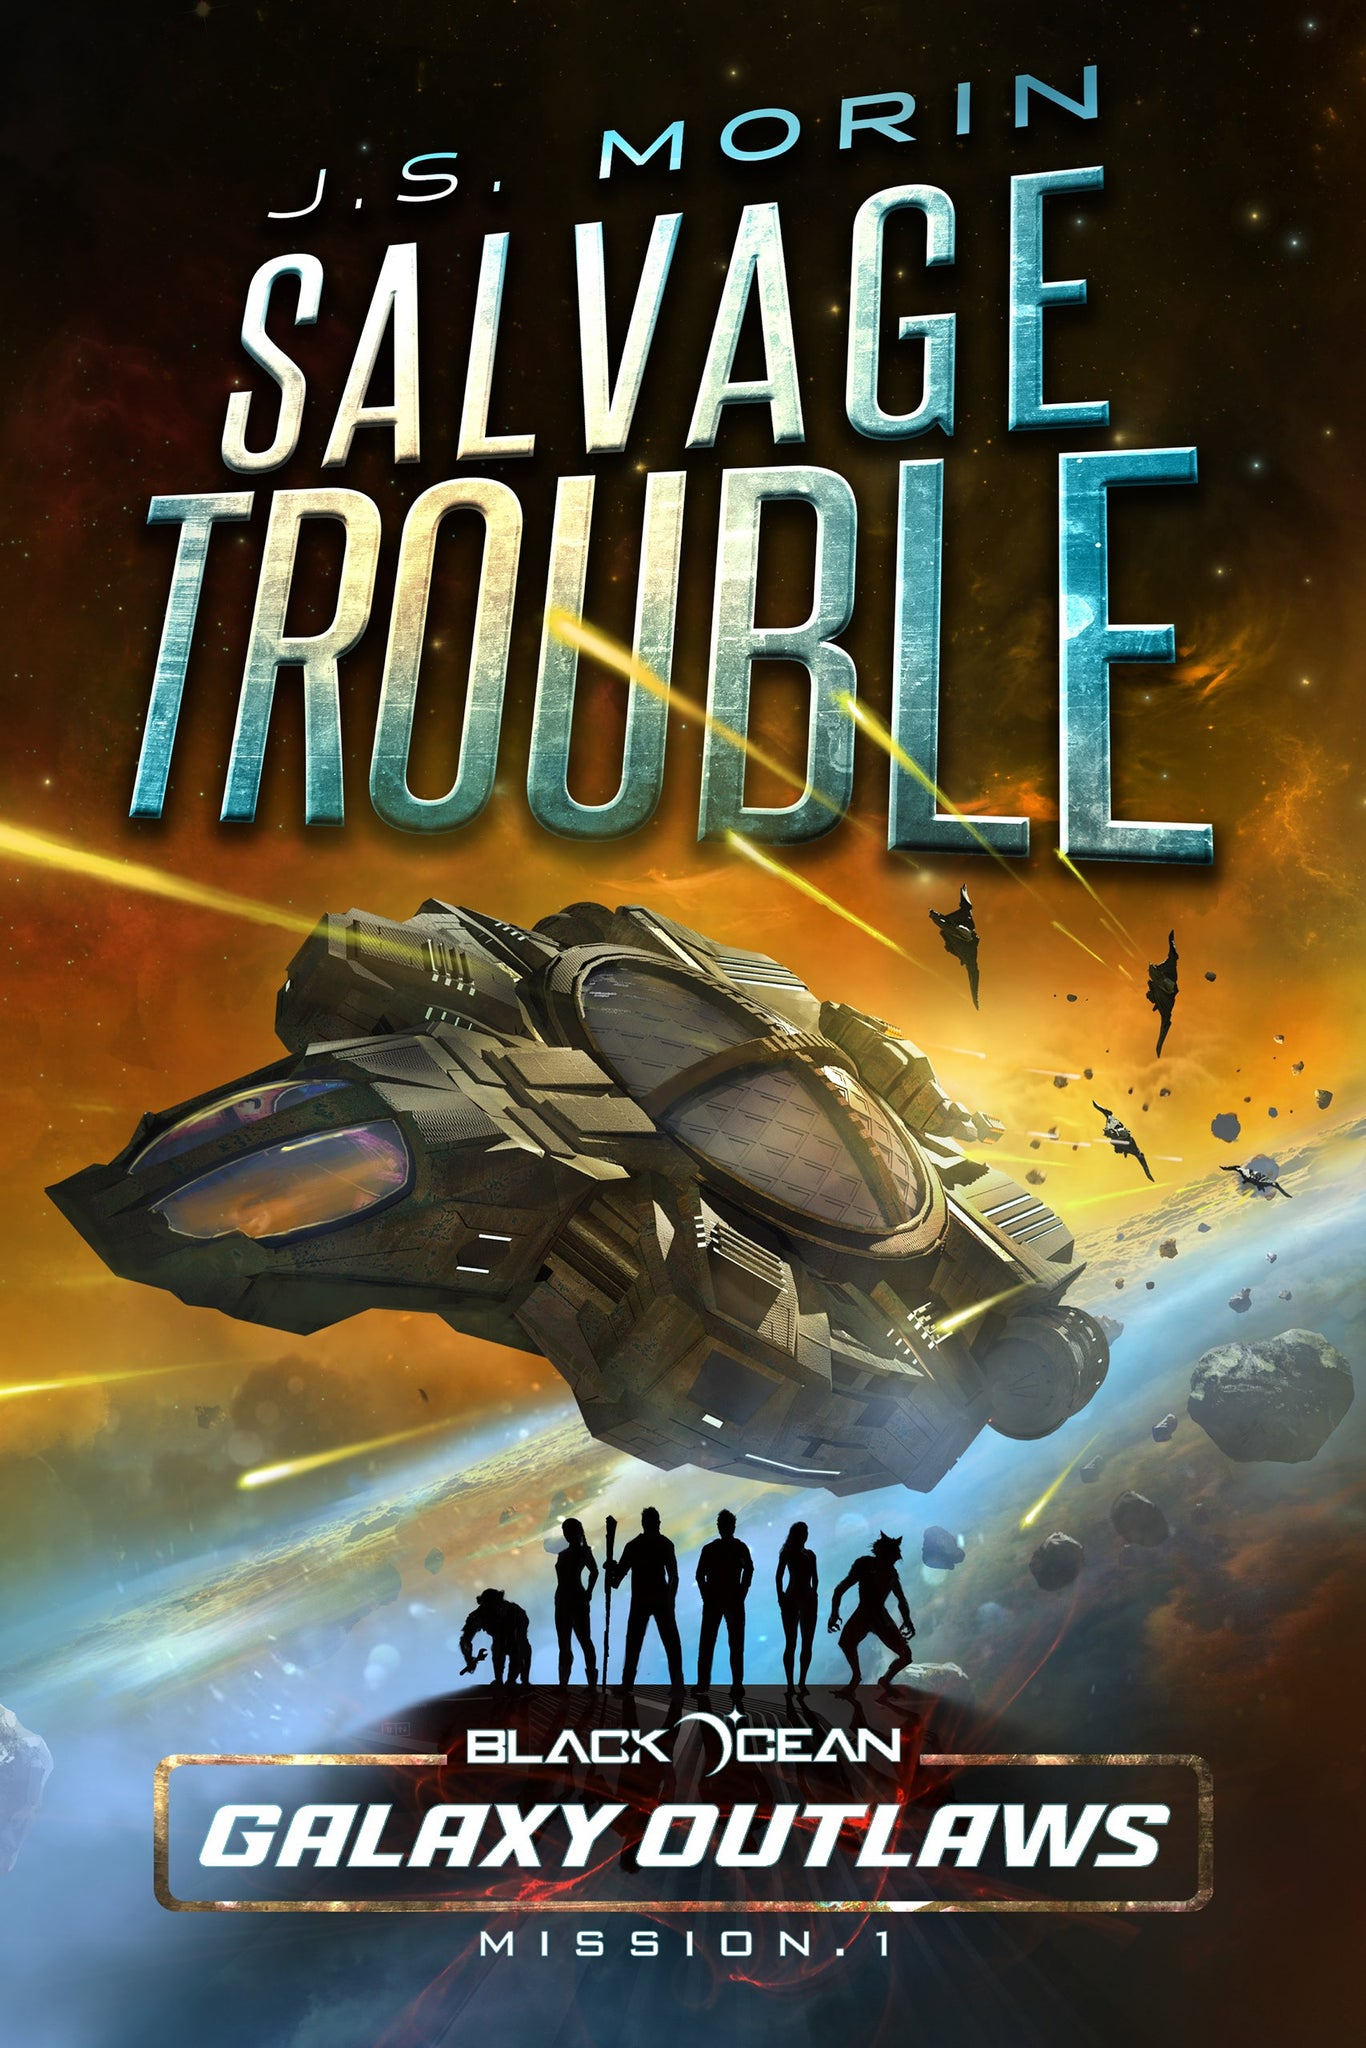 Salvage Trouble, Black Ocean Mission 1